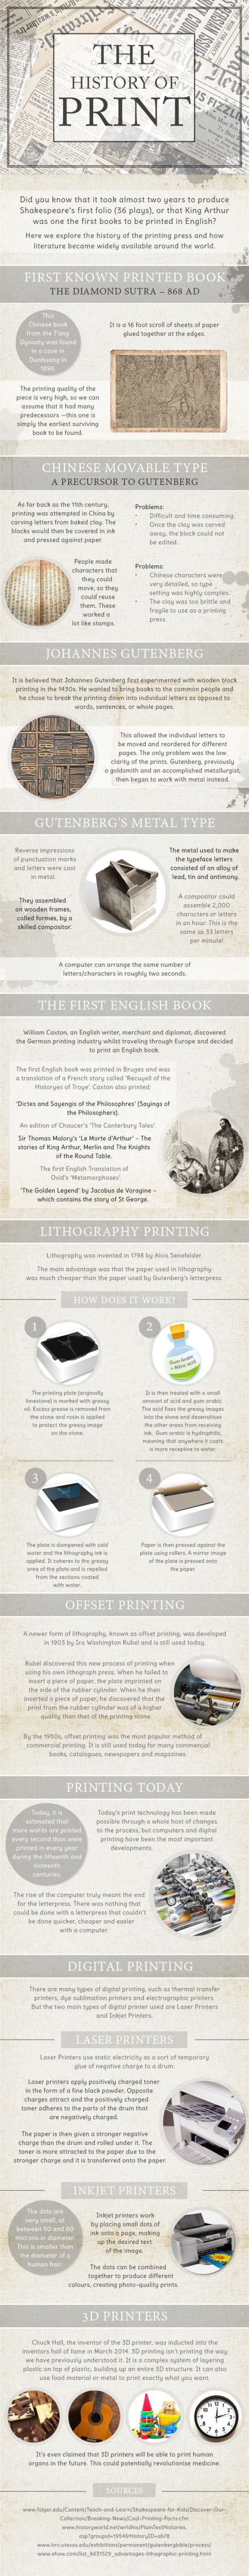 The History Of Printed Word (infographic)